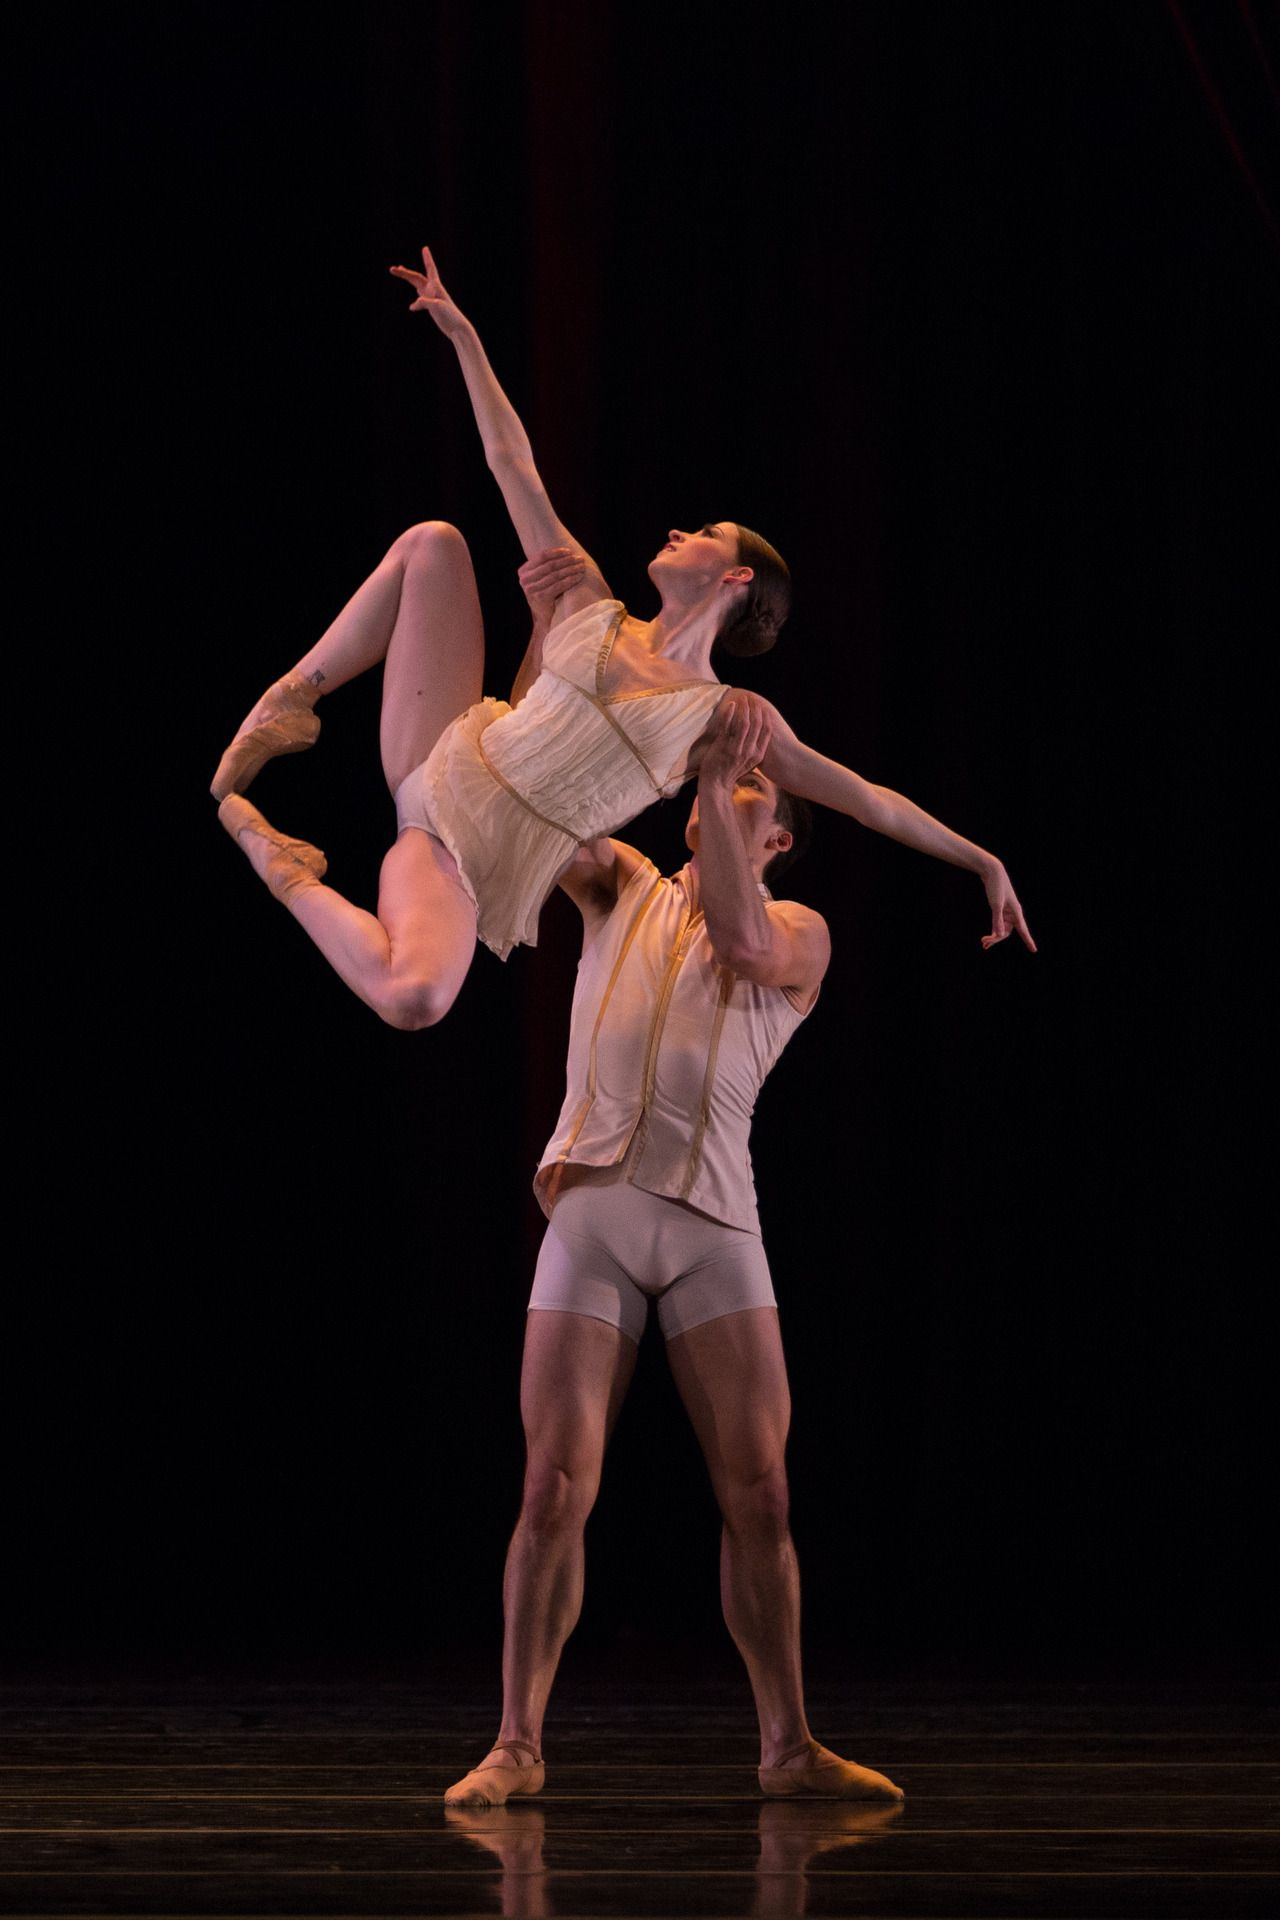 Athletes Of God Contemporary Ballet Dance Photography Modern Dance